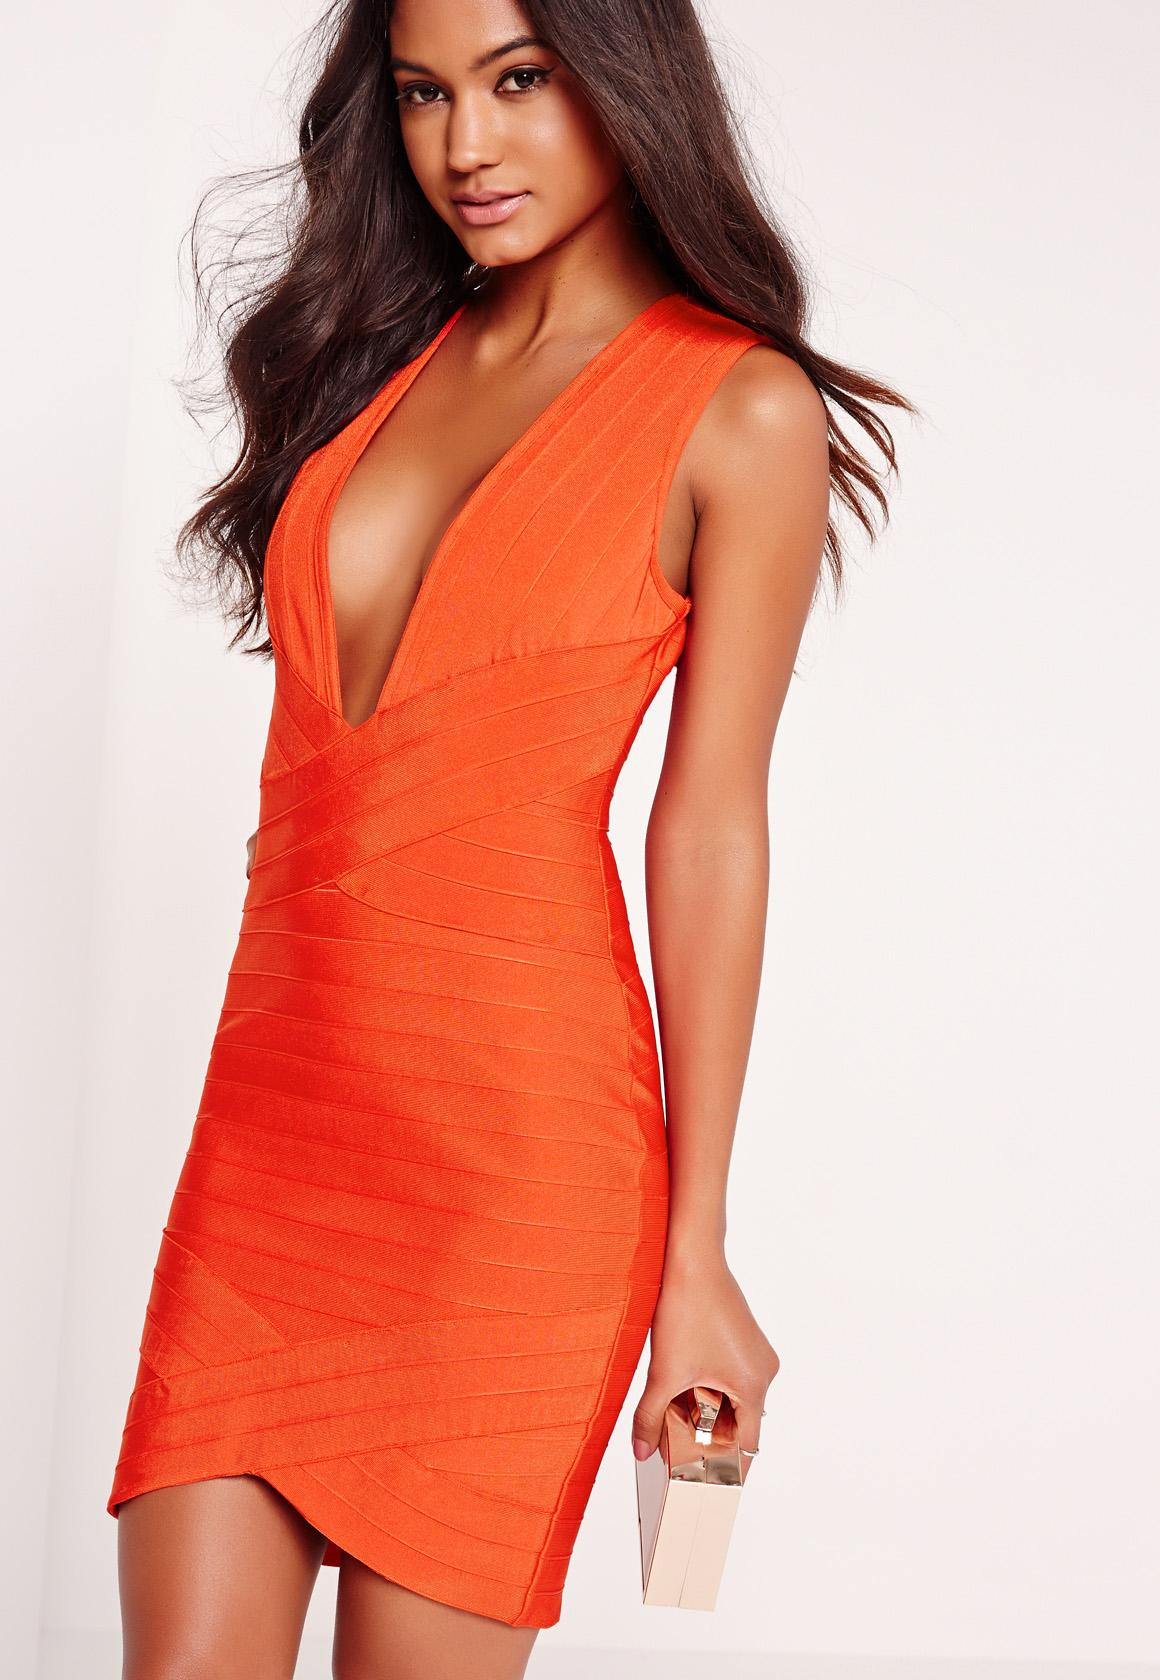 Orange Bodycon Dress | Ejn Dress